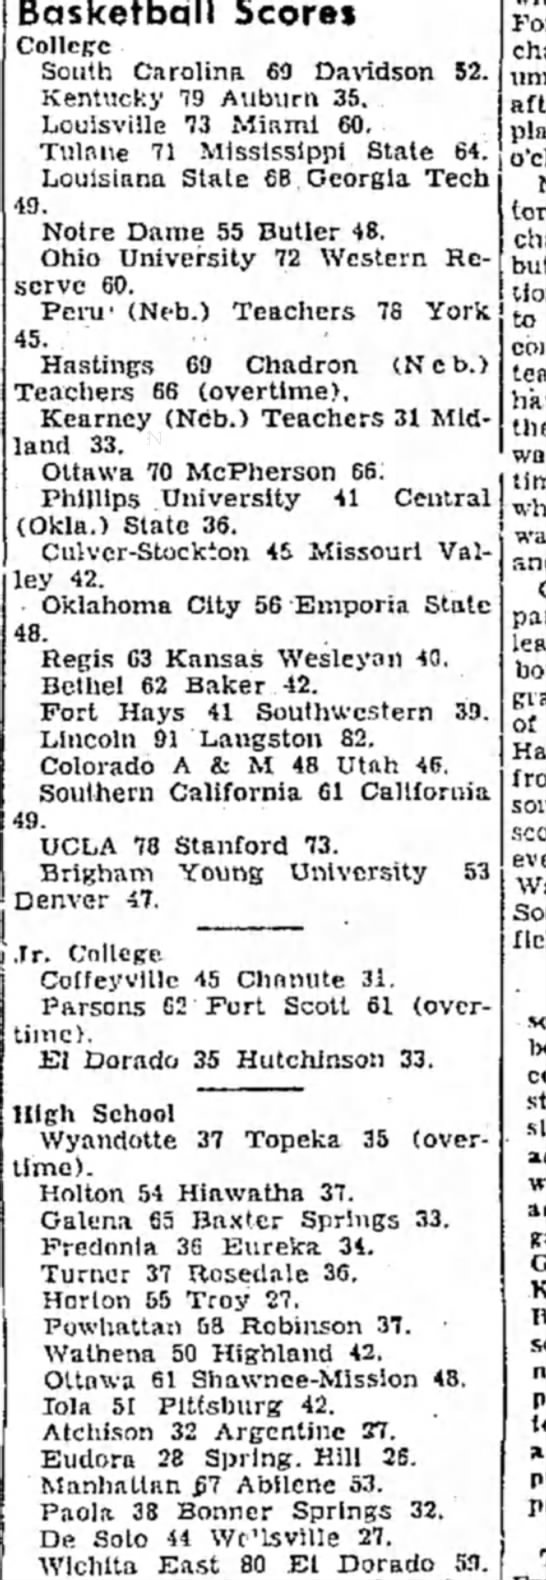 1951 phs beat robinson - I Basketball Scores College South Carolina 69...